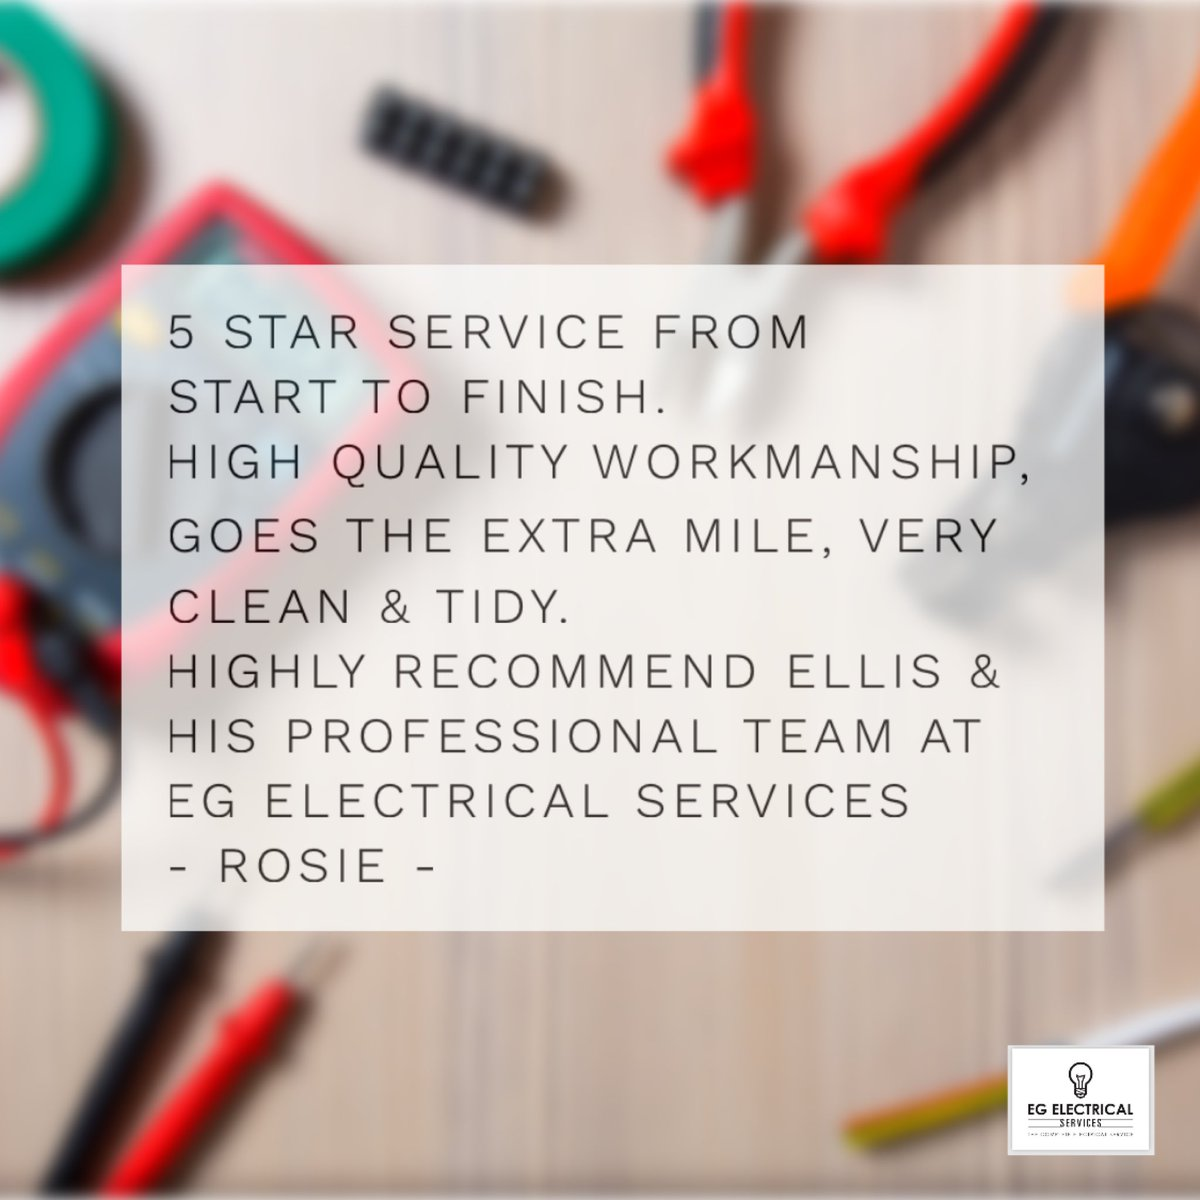 Thank you to Rosie for a #review we have recently received via our @YellBusiness page #localbusiness #business #construction #customerservice #customer #5star #work #localbusinessowners #niceic #electrician #sparky #sparkslife #cambridgeshire #egelectricalservices #lovemyjobpic.twitter.com/Wwot4tRHEp